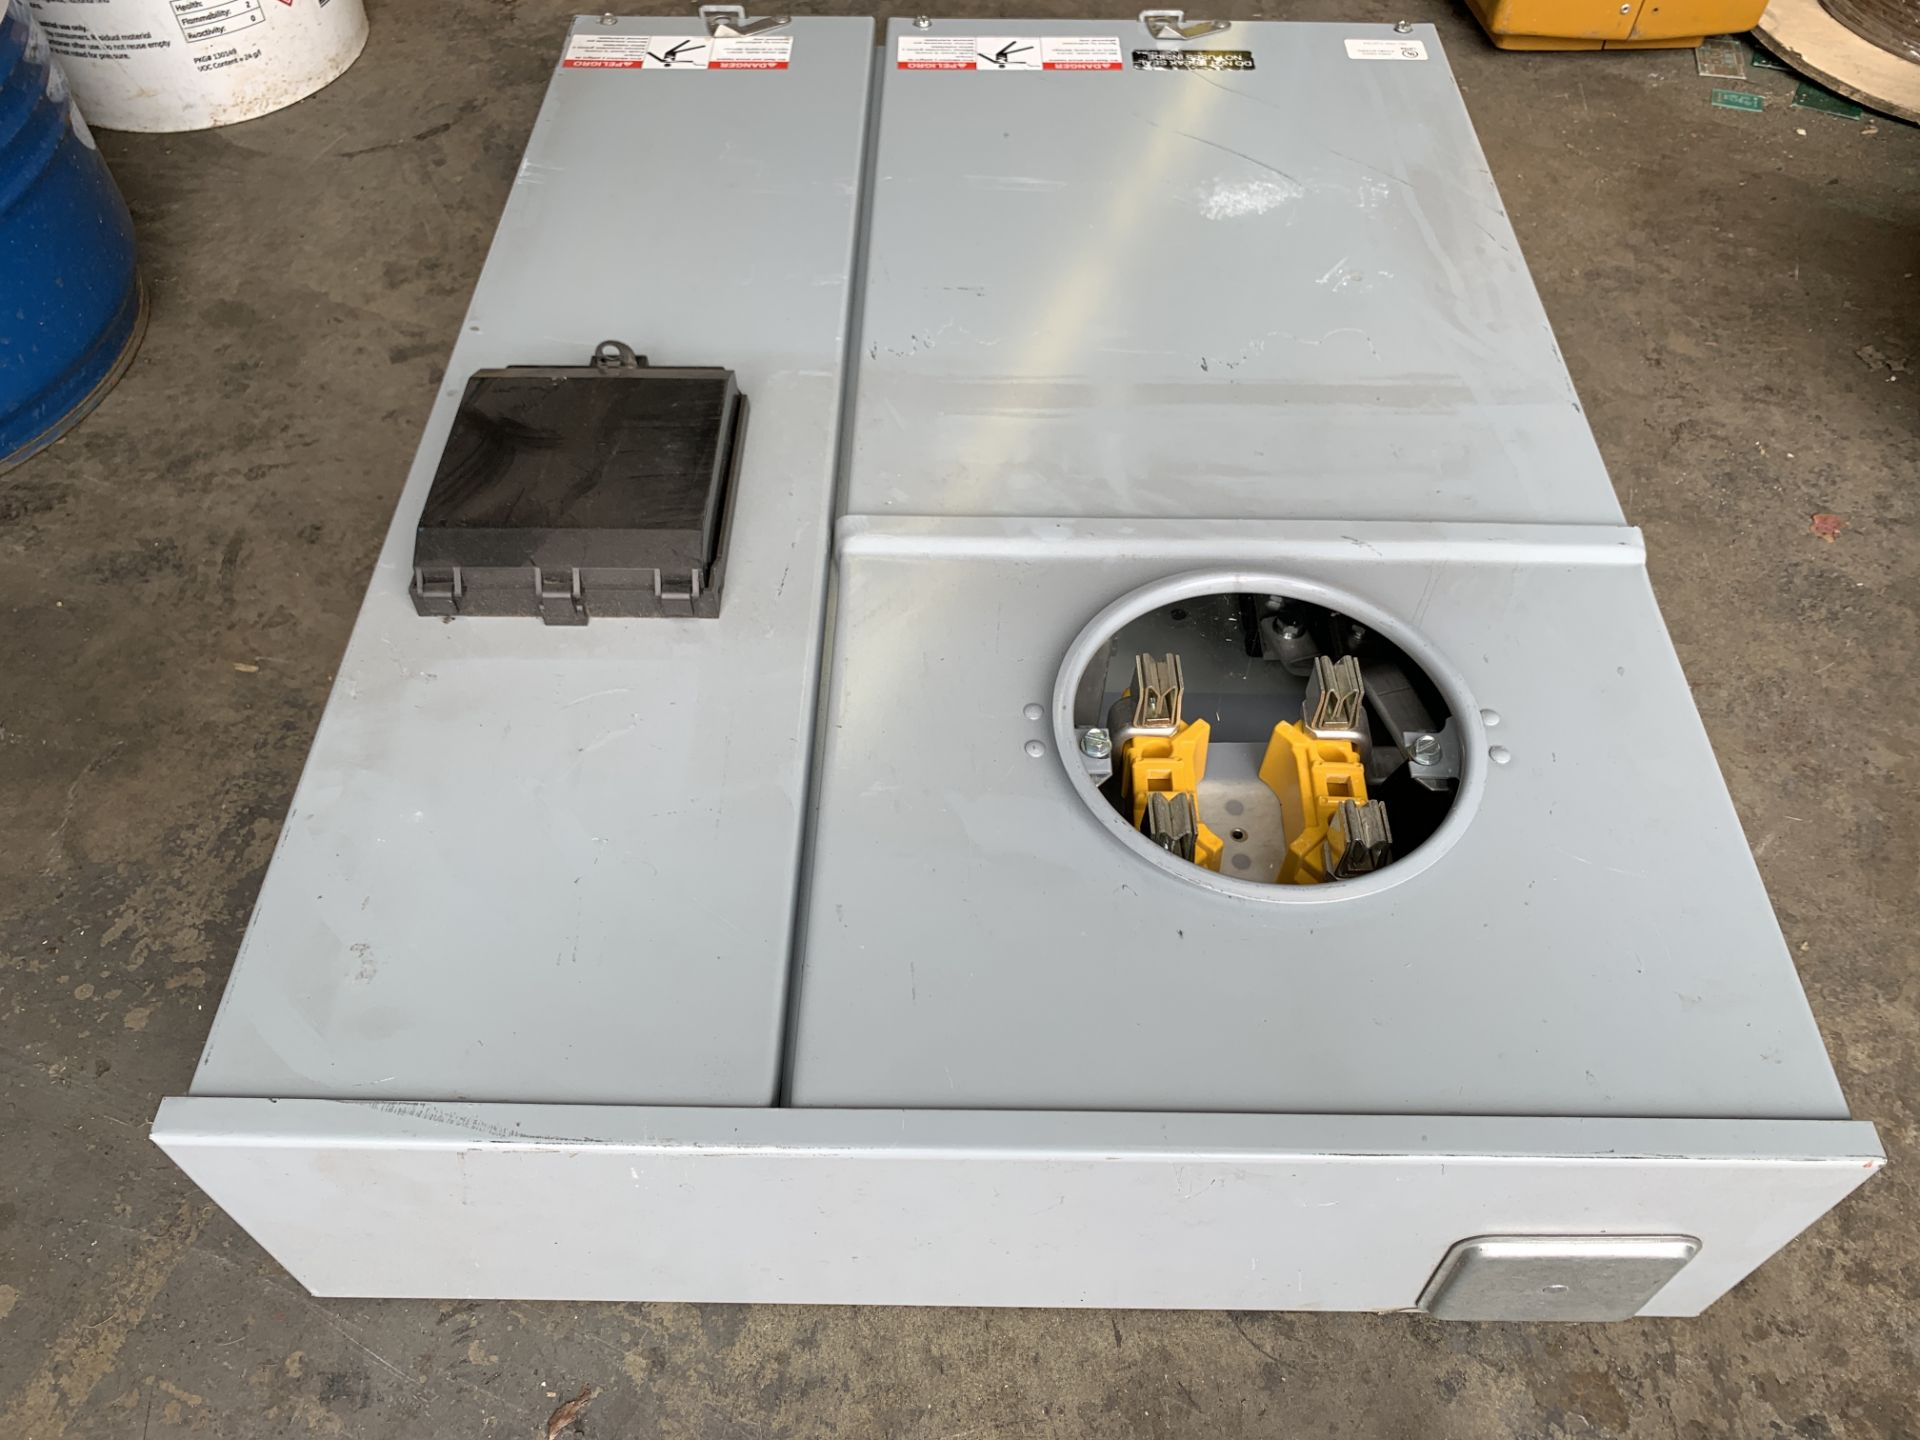 Lot 203 - Electrical Meter Enclosed Panel Board Unit, stands approx 3' tall, sold as is, In Los Angeles